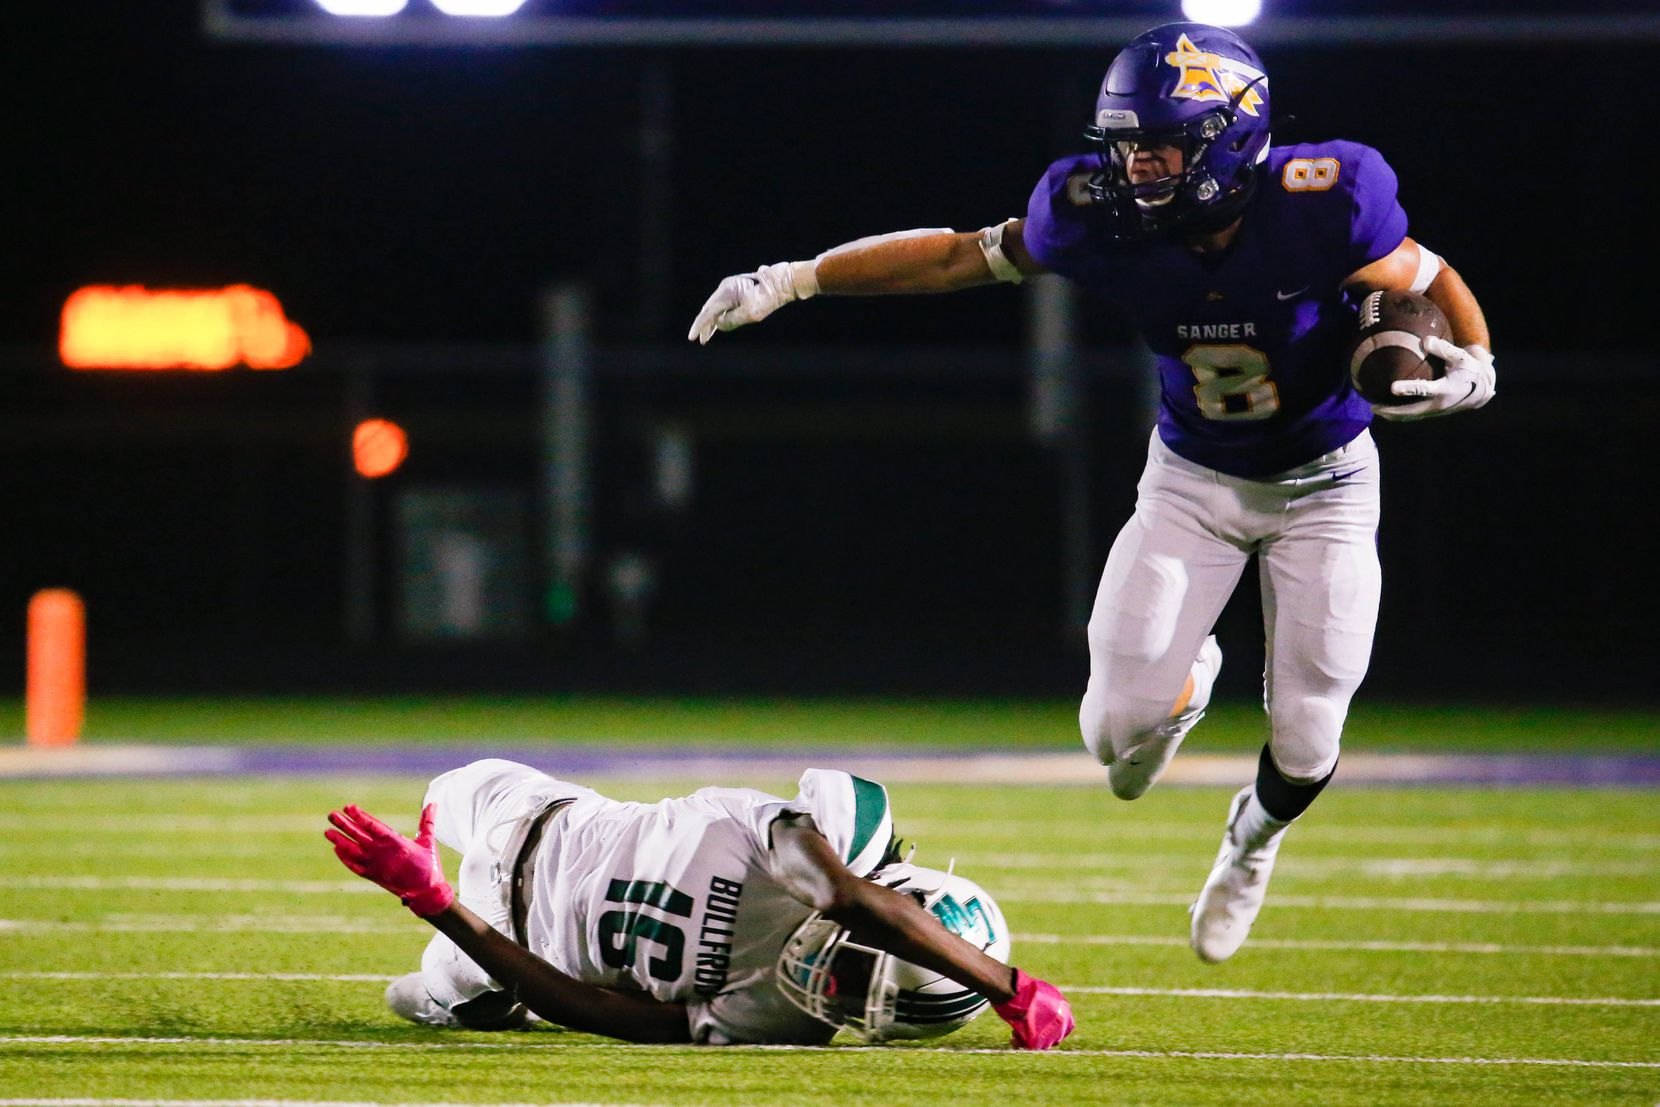 Sanger High School player Zach Shepard (8) jumps to avoid Lake Worth High School's Craig Williams (16) during the second half of a game on Sept. 4, 2020 in Sanger. Sanger won 49-35. (Juan Figueroa/ The Dallas Morning News)